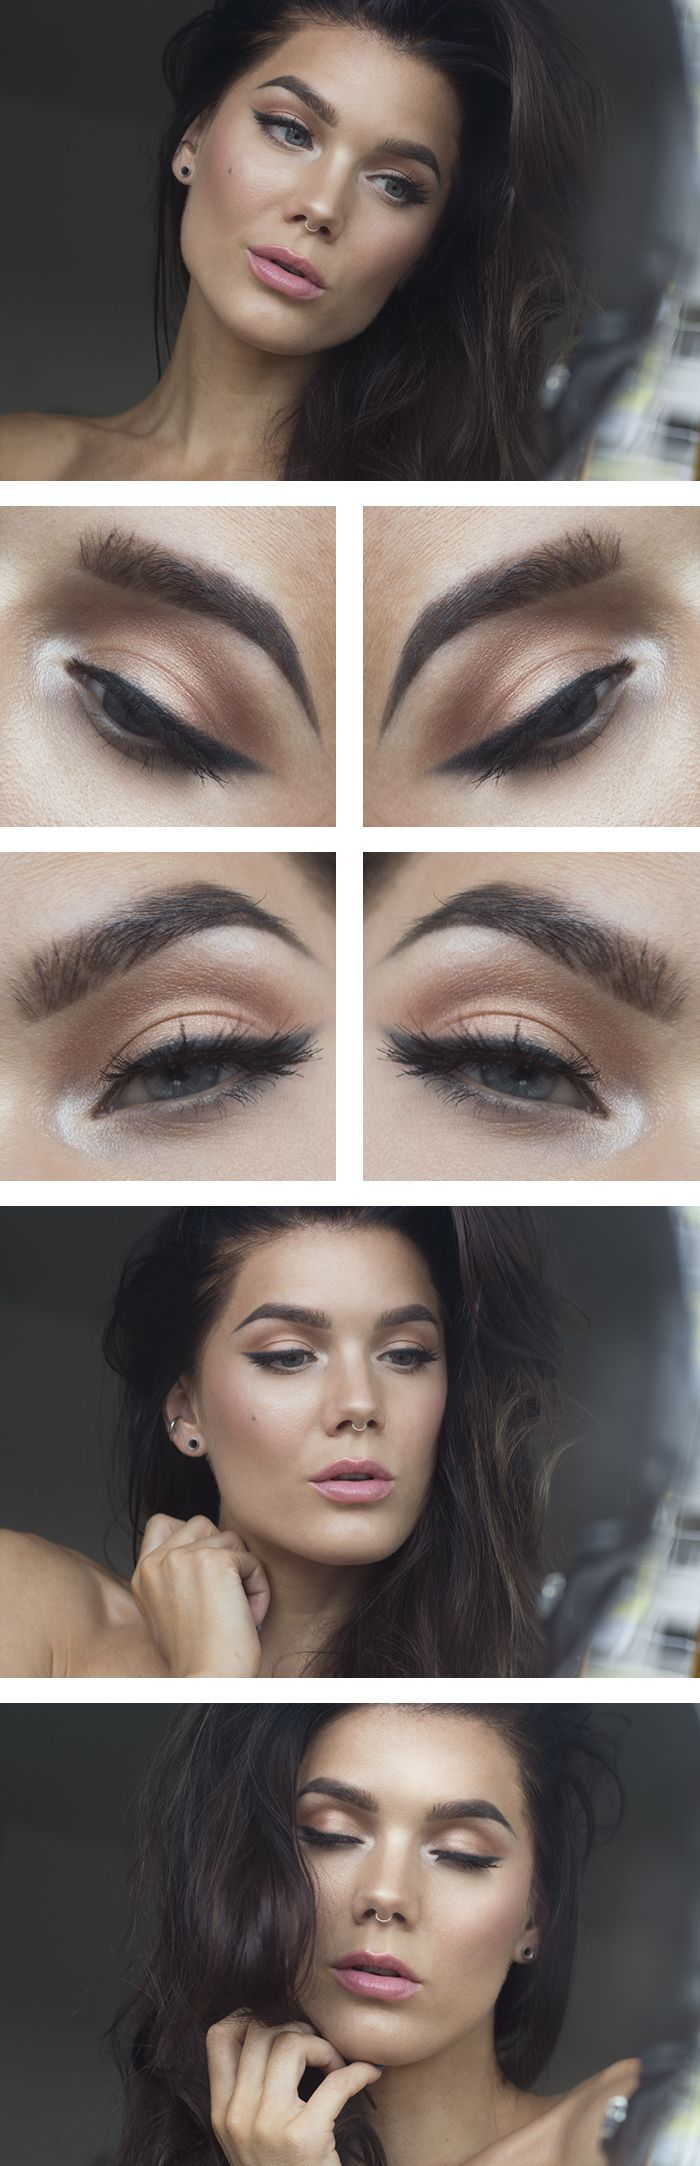 Natural eye shadow NEW Real Techniques brushes makeup -$10 http://youtu.be/1K9DegfjvsI #realtechniques #realtechniquesbrushes #makeup #makeupbrushes #makeupartist #brushcleaning #brushescleaning #brushes